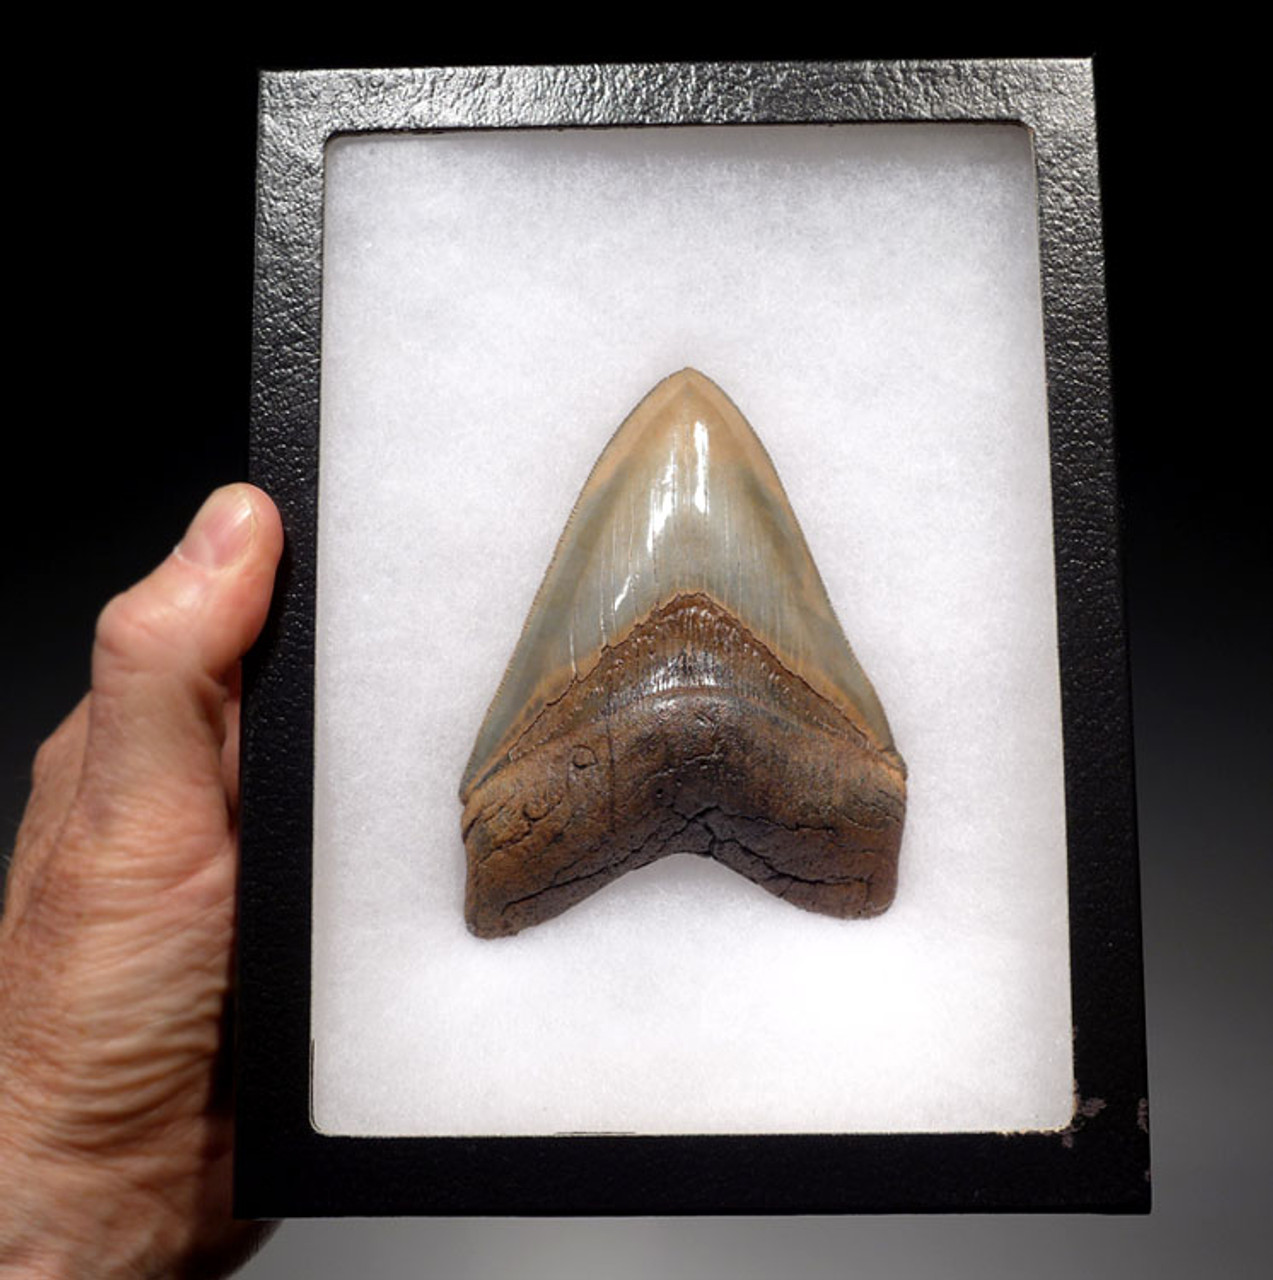 SH6-330 - FINEST GRADE 4.7 INCH MEGALODON TOOTH WITH LIGHT GOLD AND BLUE-GRAY ENAMEL